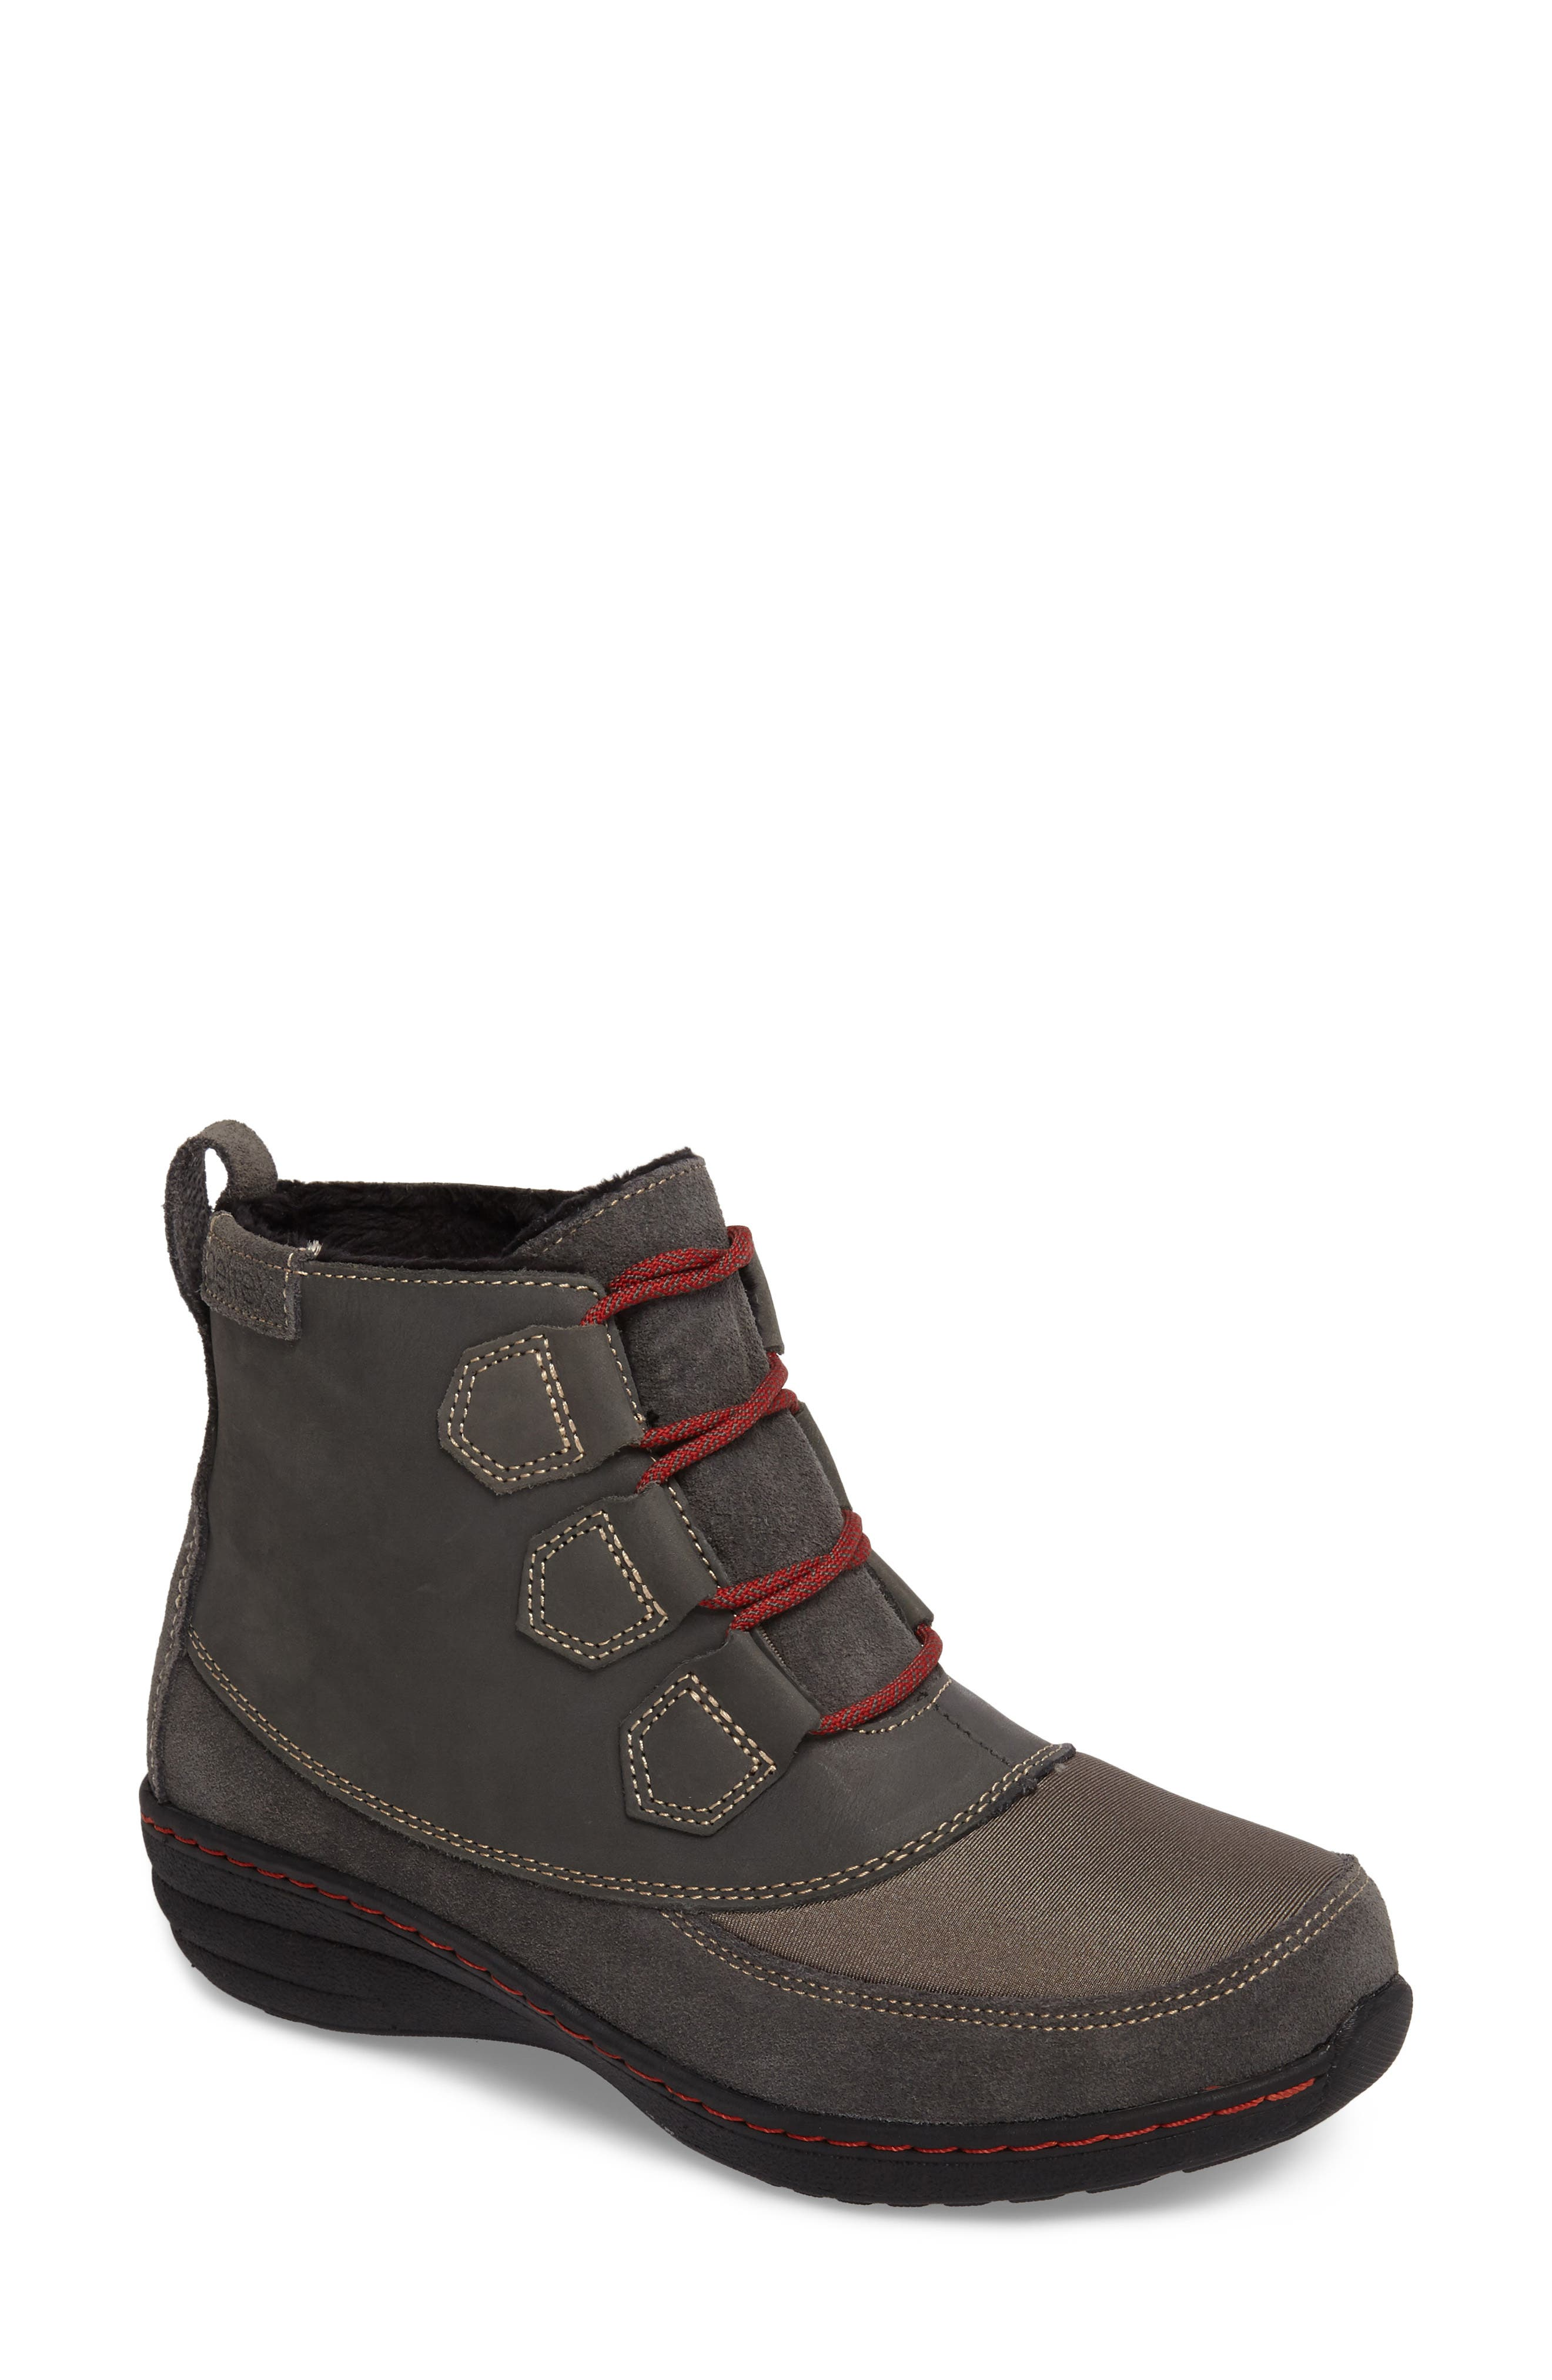 Berries Ankle Boot,                         Main,                         color, GREYBERRY LEATHER